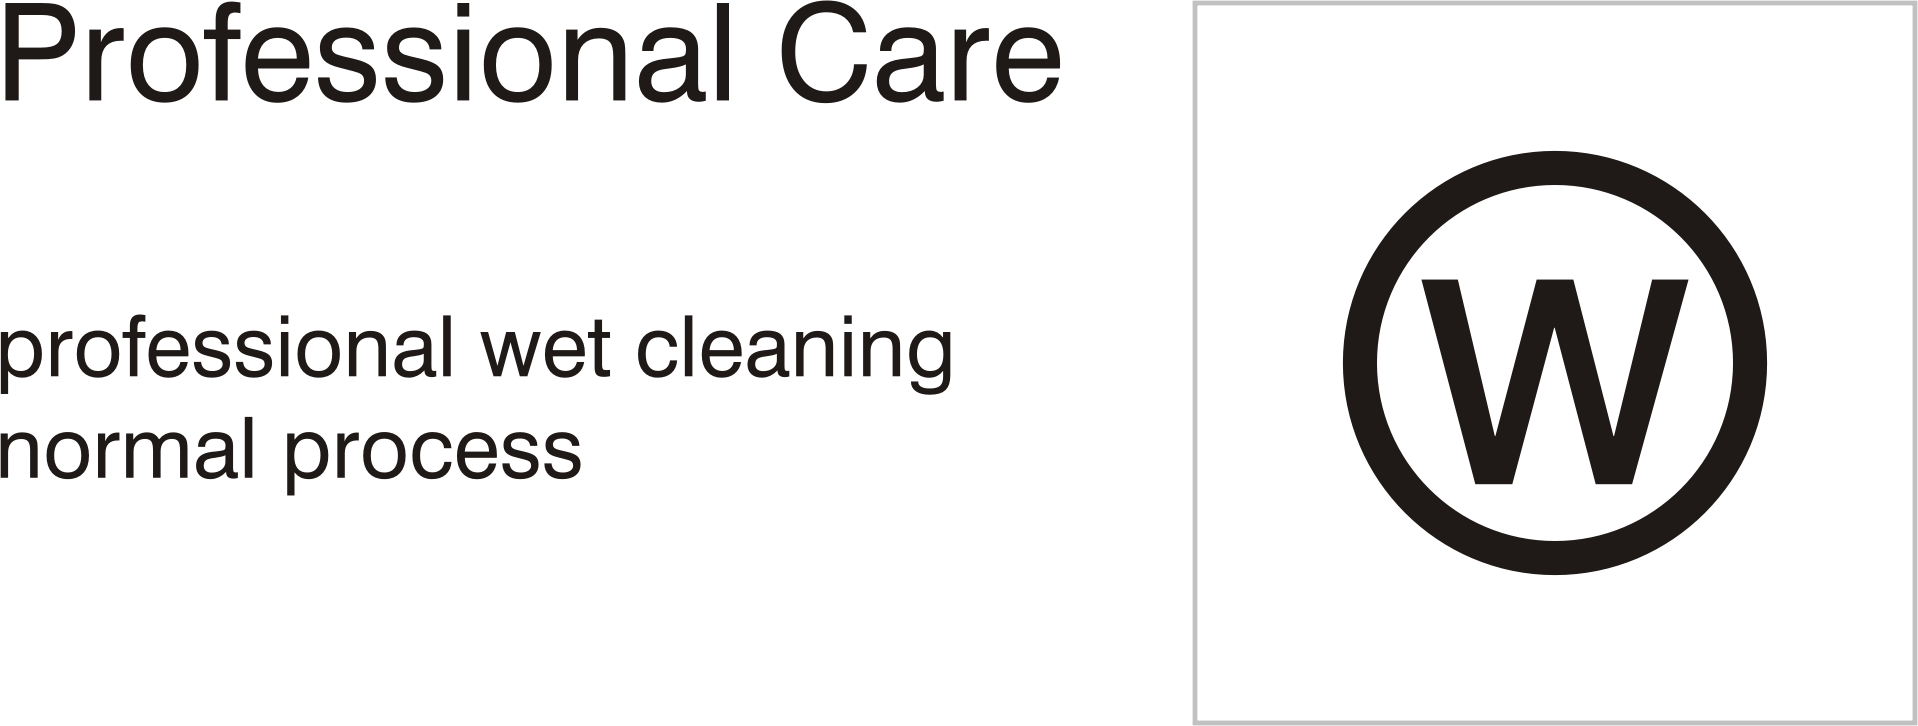 Care symbols, professional care: wet clean - normal process by Vanja